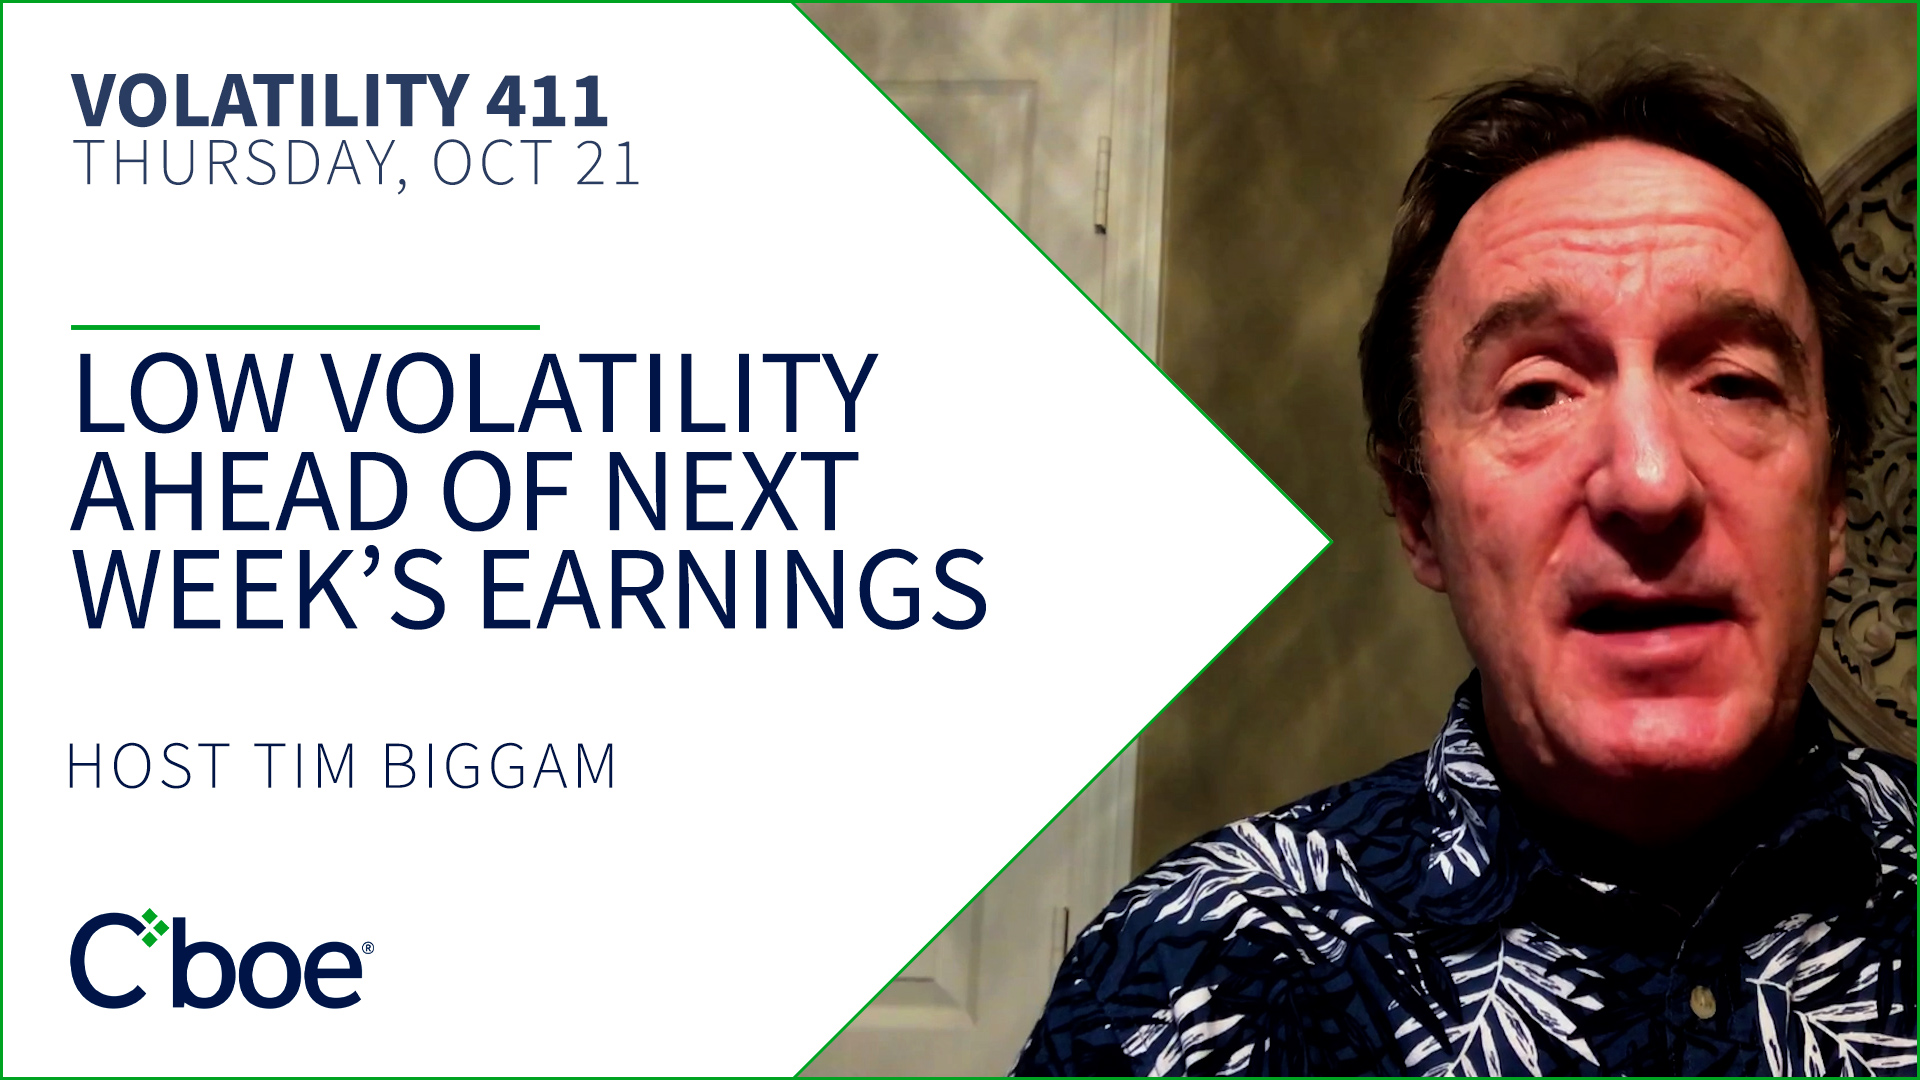 Low Volatility Ahead of Next Week's Earnings Thumbnail